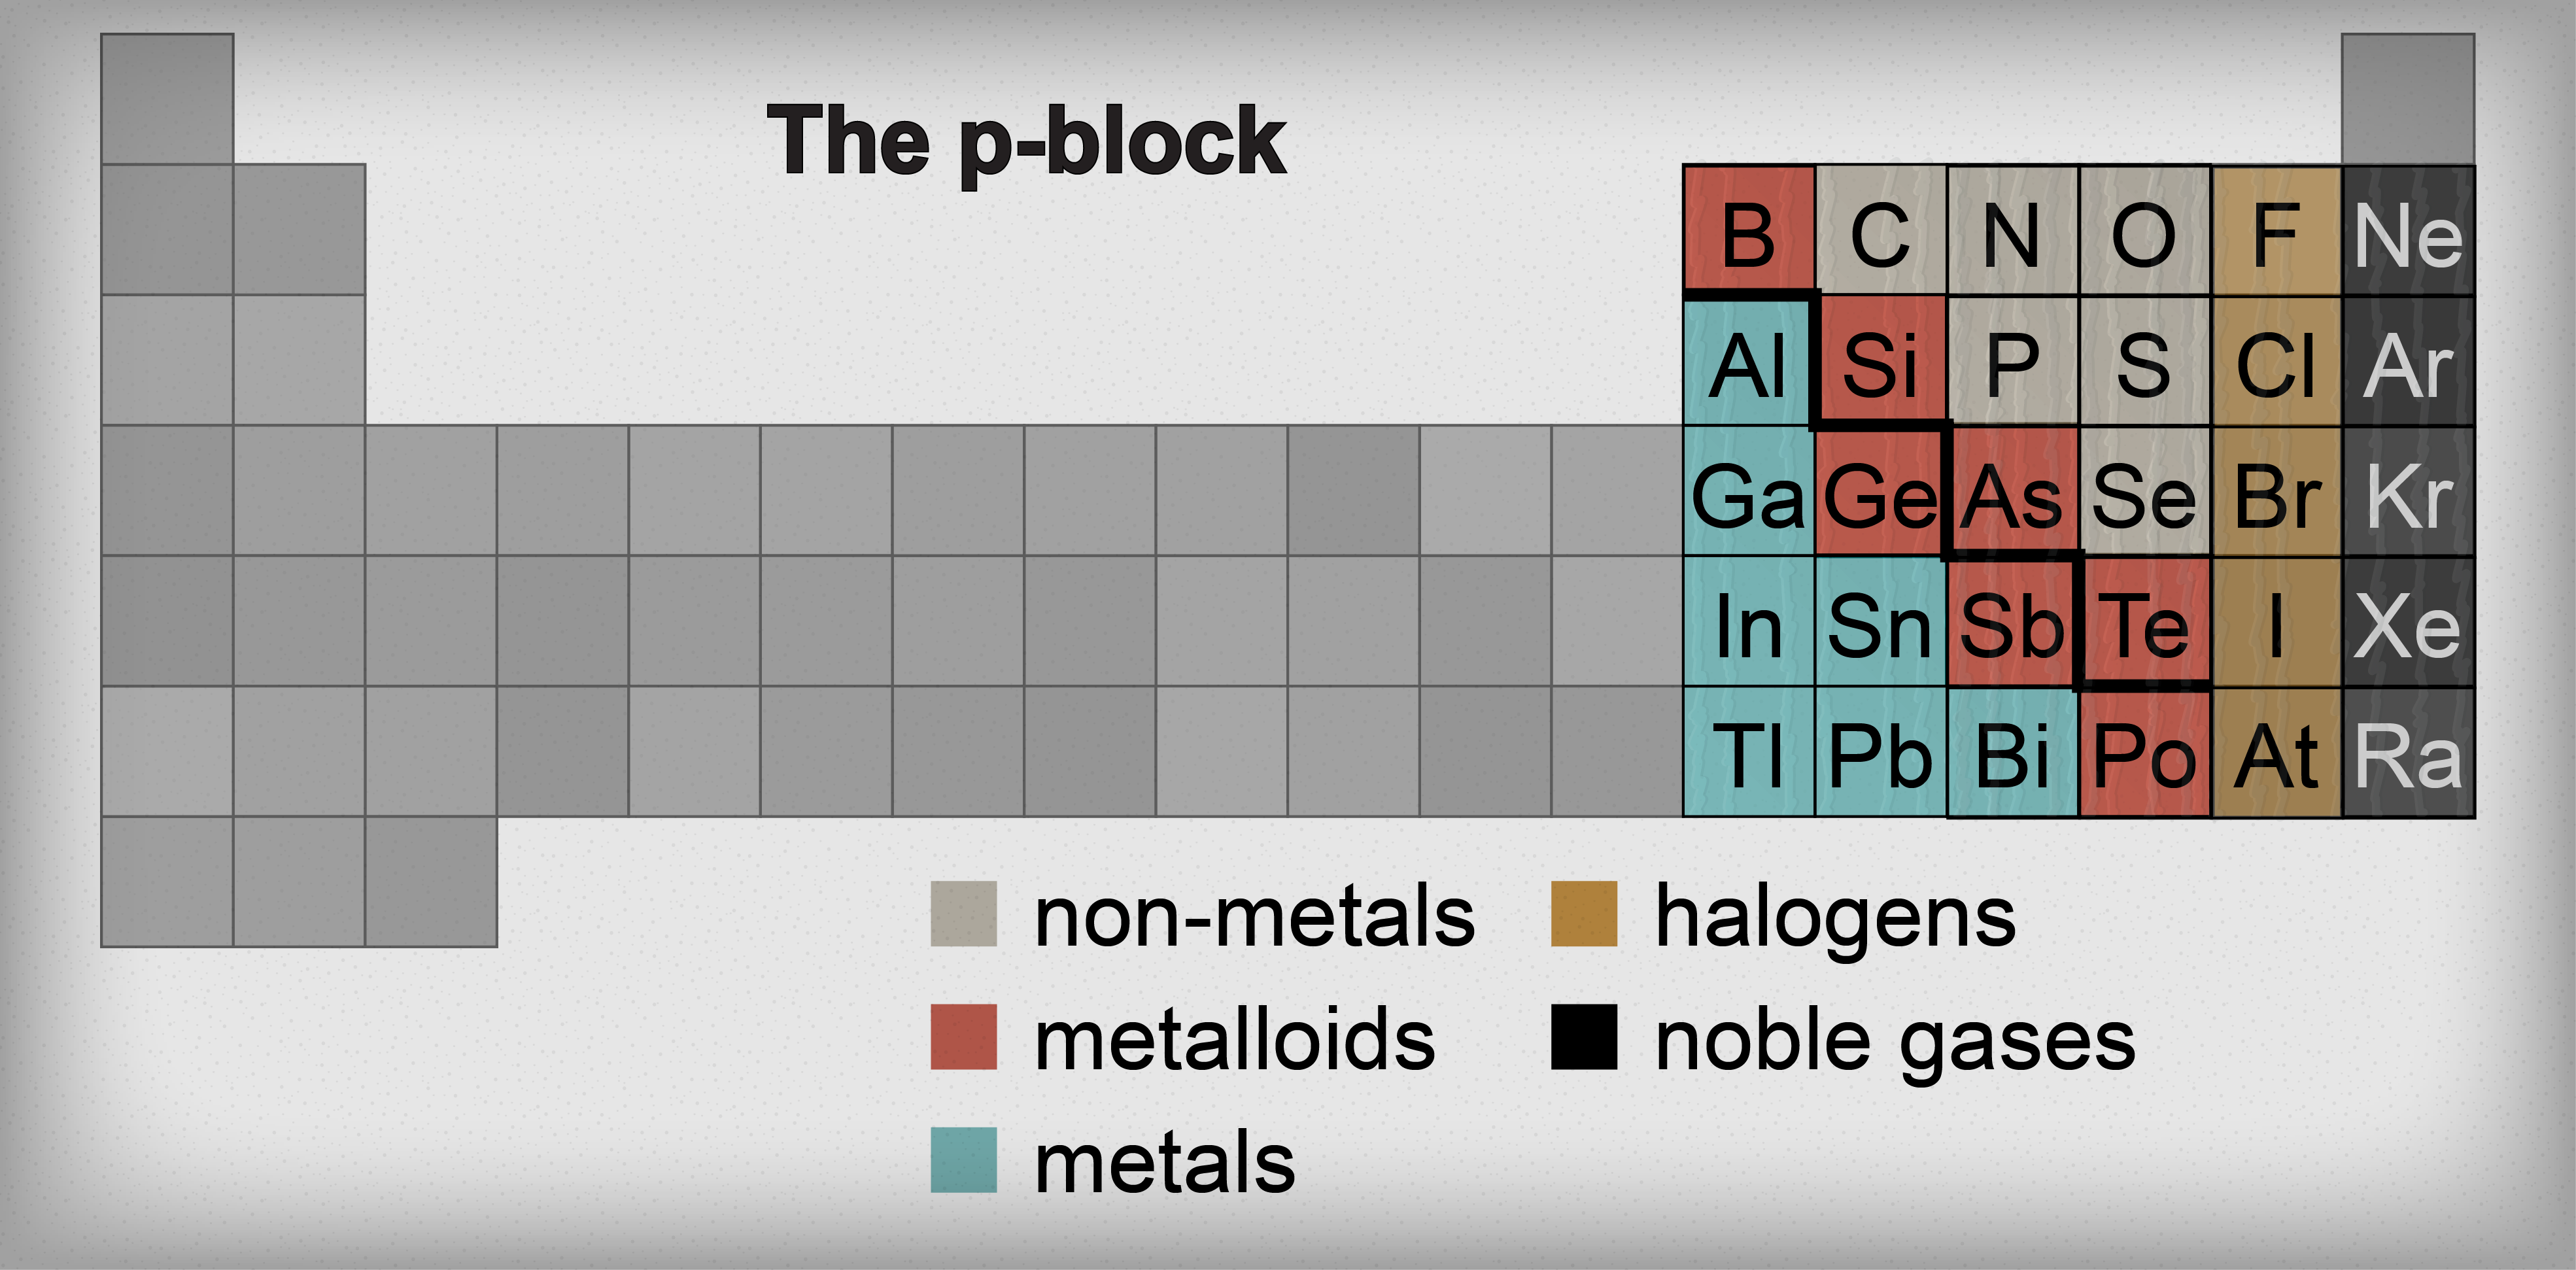 Chemistry metals metalloids and non metals shmoop chemistry in this section dividing elements into columns is so 2000 and late instead the p block is split into metals metalloids and non metals gamestrikefo Image collections